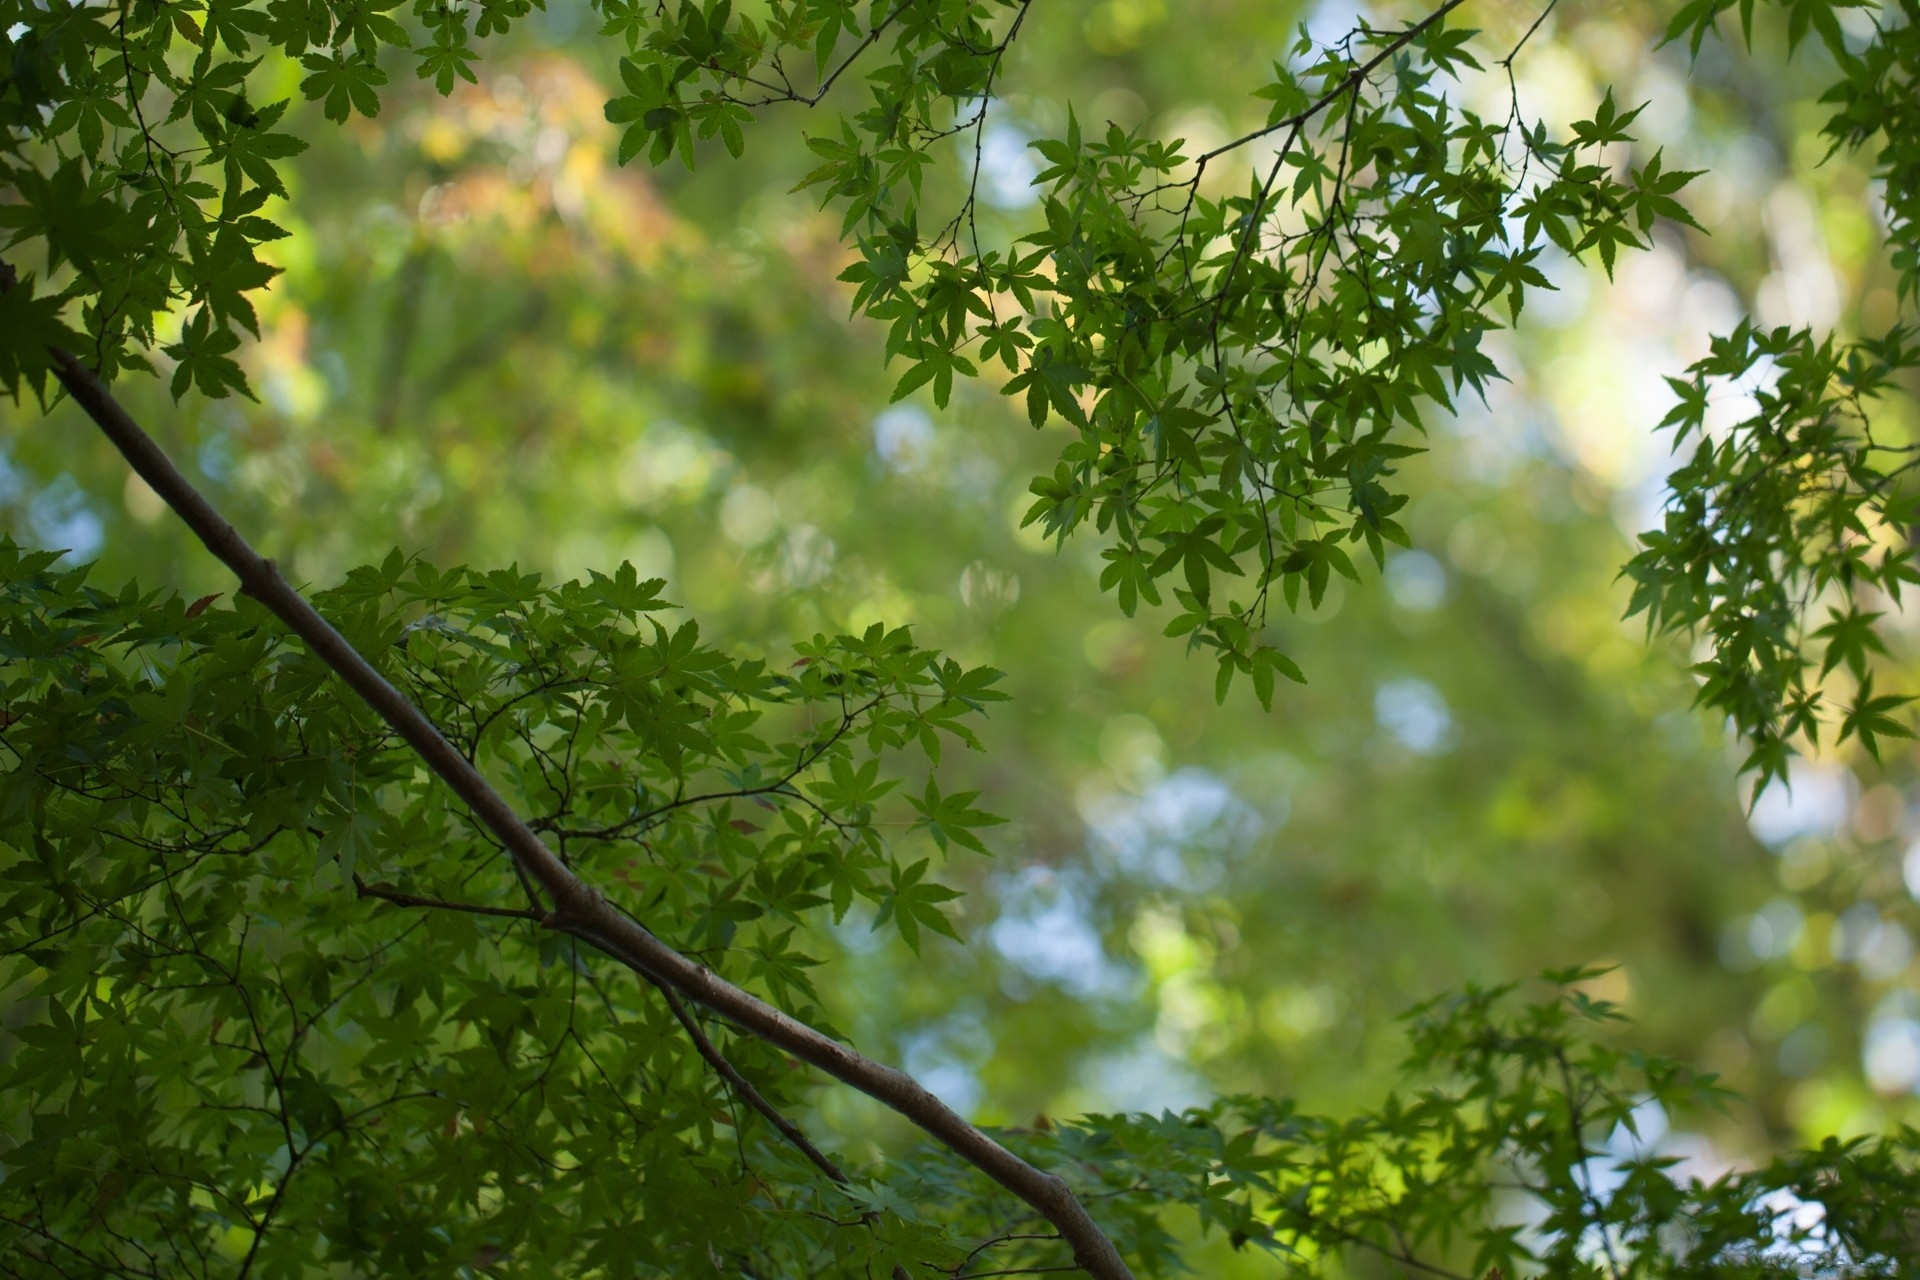 131942 download wallpaper Branches, Leaves, Nature screensavers and pictures for free